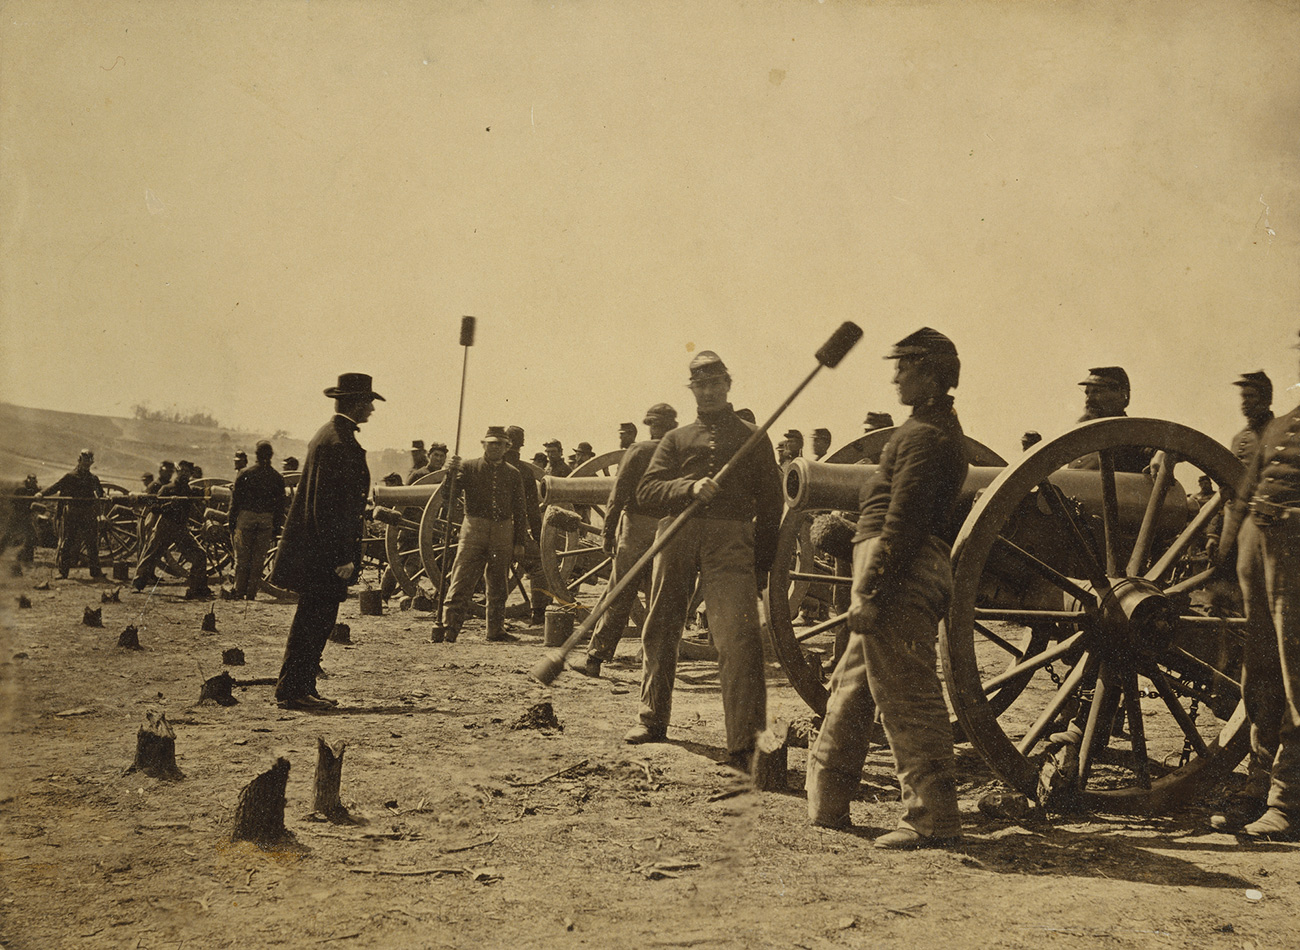 A historical photograph of soldiers in uniform preparing for a battle. A group of 30 or so solders stand next to canons, ready to light them.